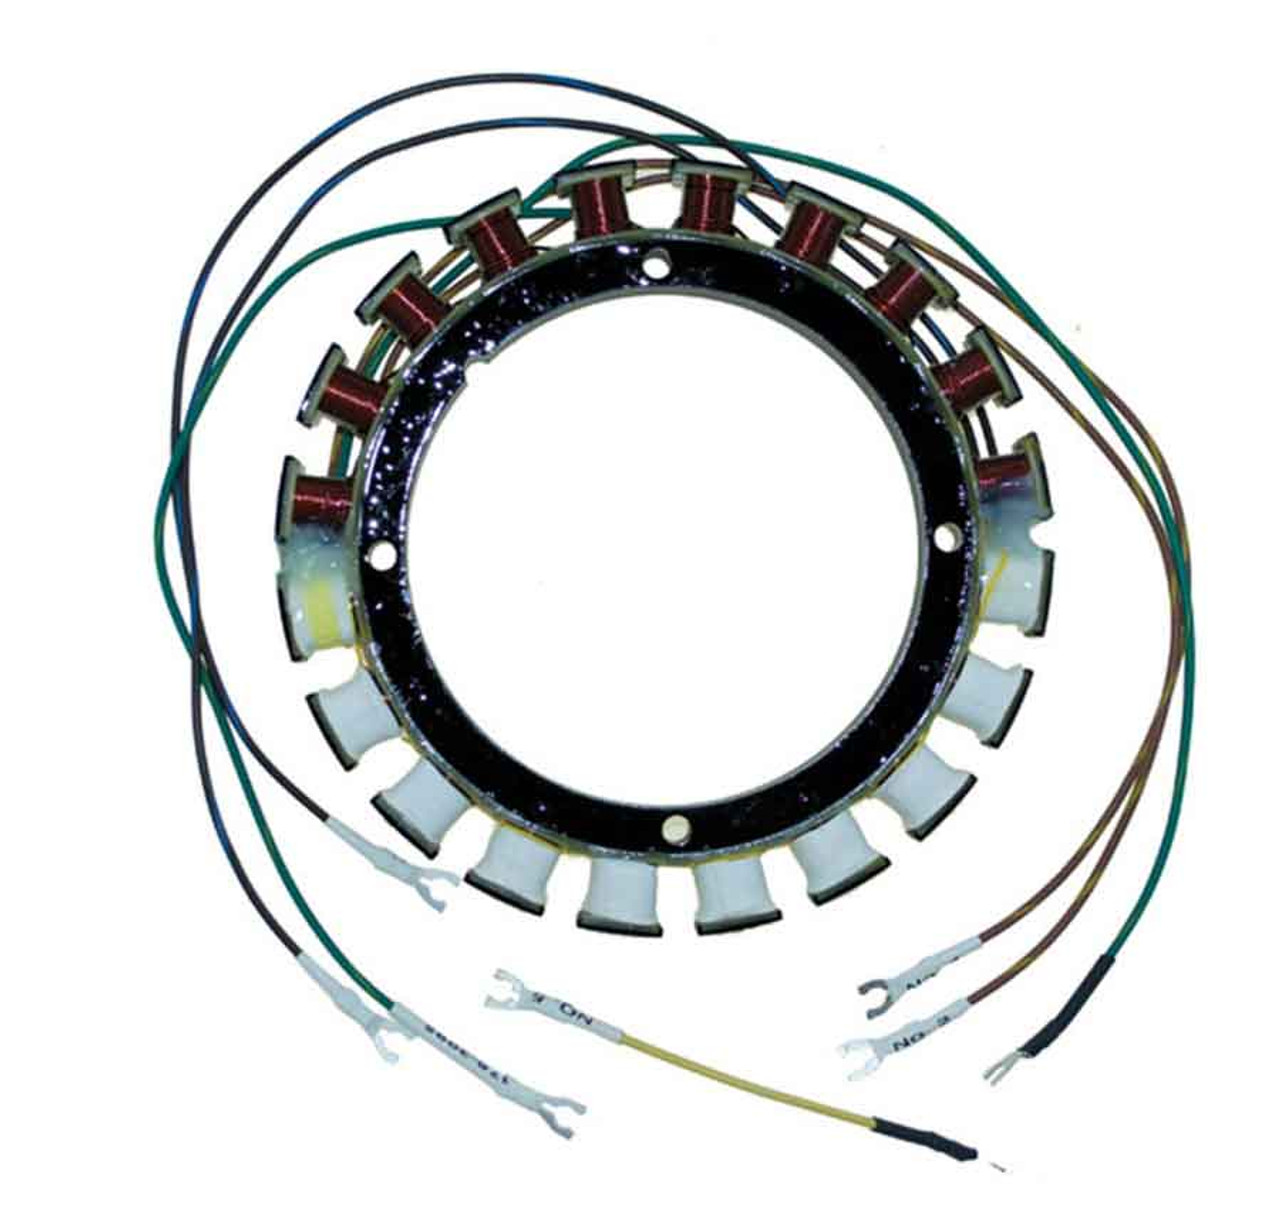 New CDI Chrysler/Force 2, 3, 4, & 5 Cylinder Stator [Replaces OEM# F653095]